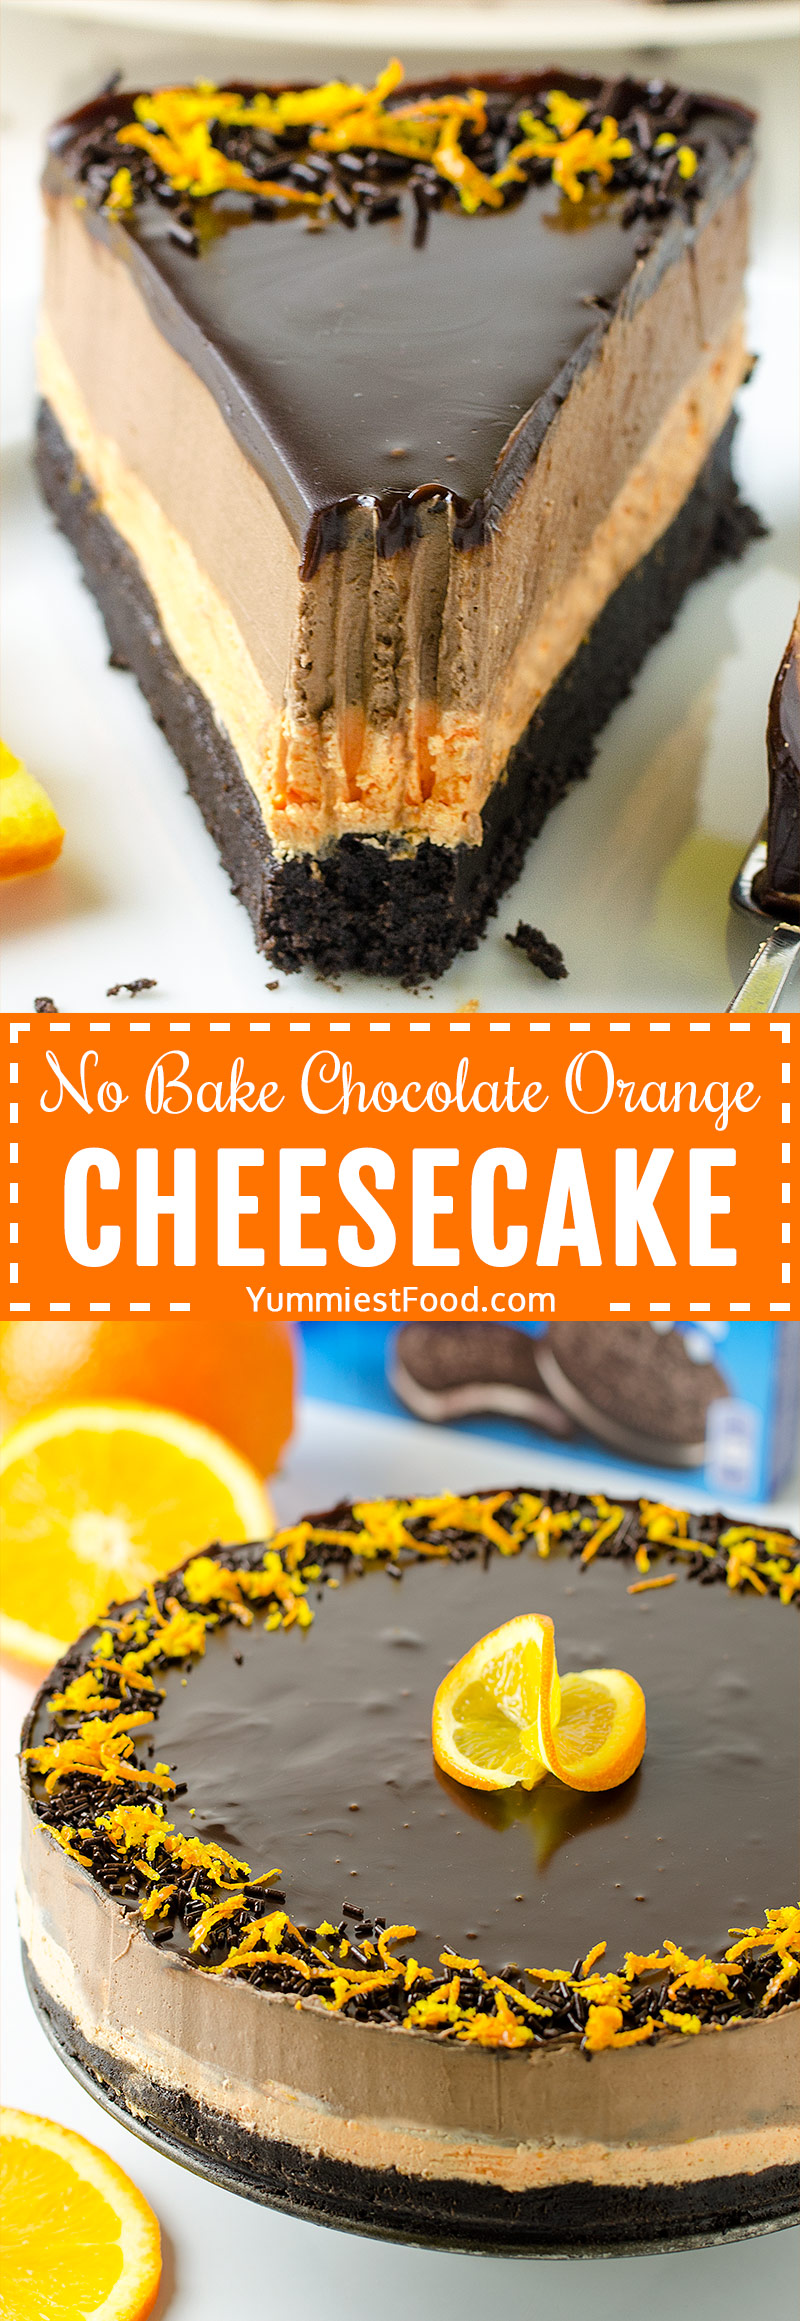 NO BAKE CHOCOLATE ORANGE CHEESECAKE - rich, moist and flavorful cheesecake